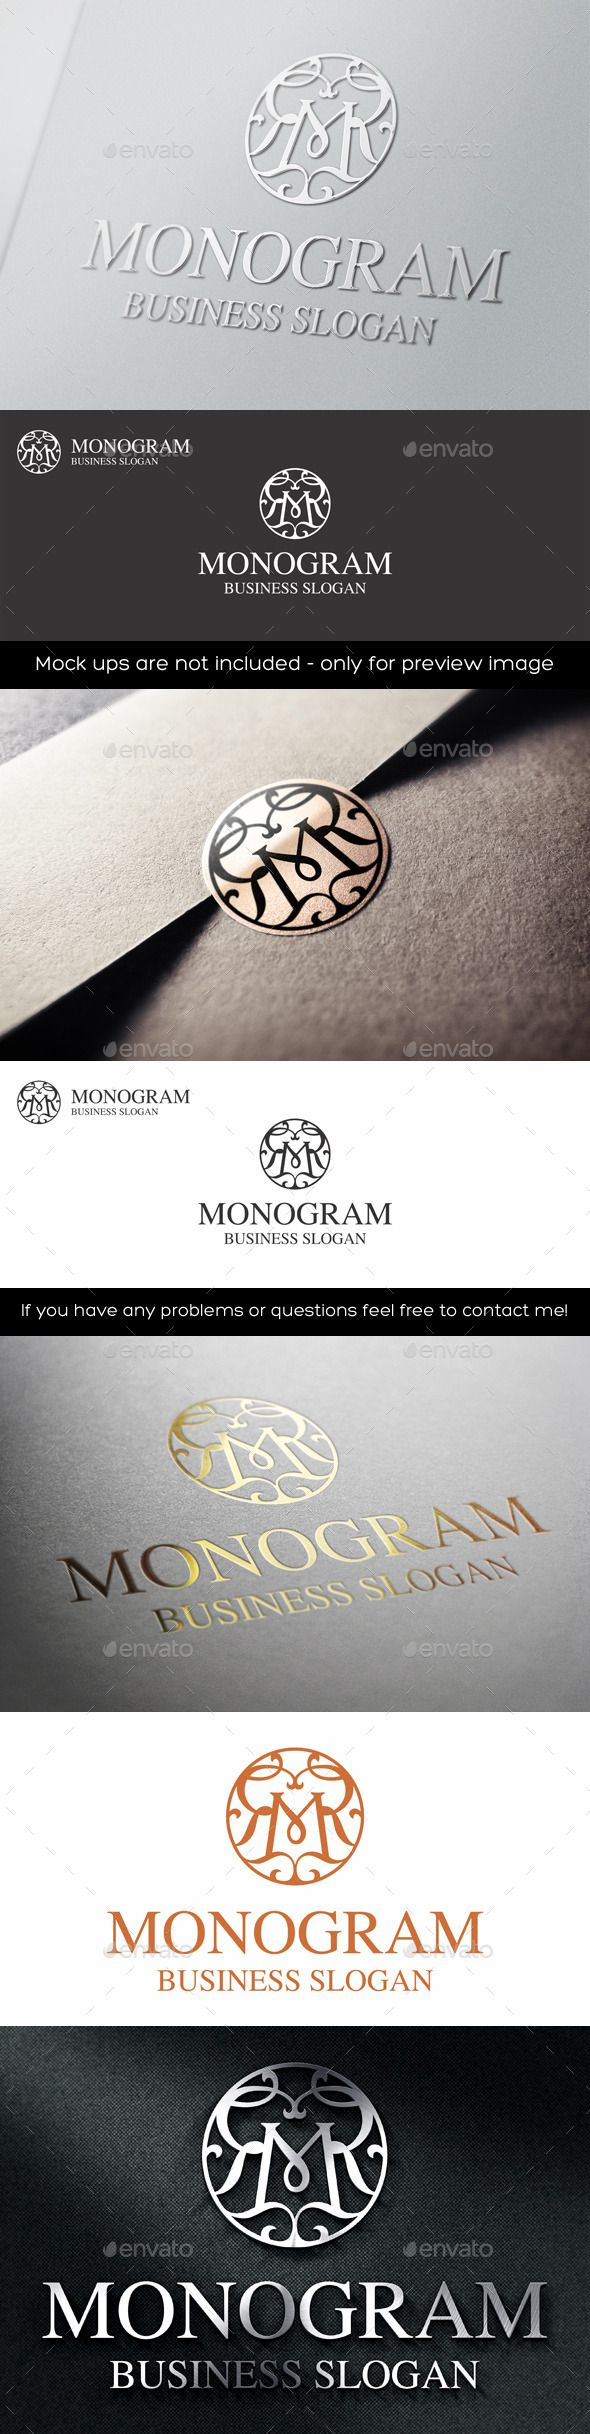 Vintage Monogram M Logo Letter - Luxury Old Style Logo Emblem. Fashion and Unique Business Logo - Great logo template suitable for different people – personal identity, and product names, or companies whose name starts with the letter M. This Premium, Classy and Elegant Logo is ideal for Elite brands like Real Estate, Apparel Boutique, Fashion Boutique, Market or Shop, Beauty Salon, Hotel and Resort, Law Firm, Business Group, Consulting, or any other classy business you can think of.